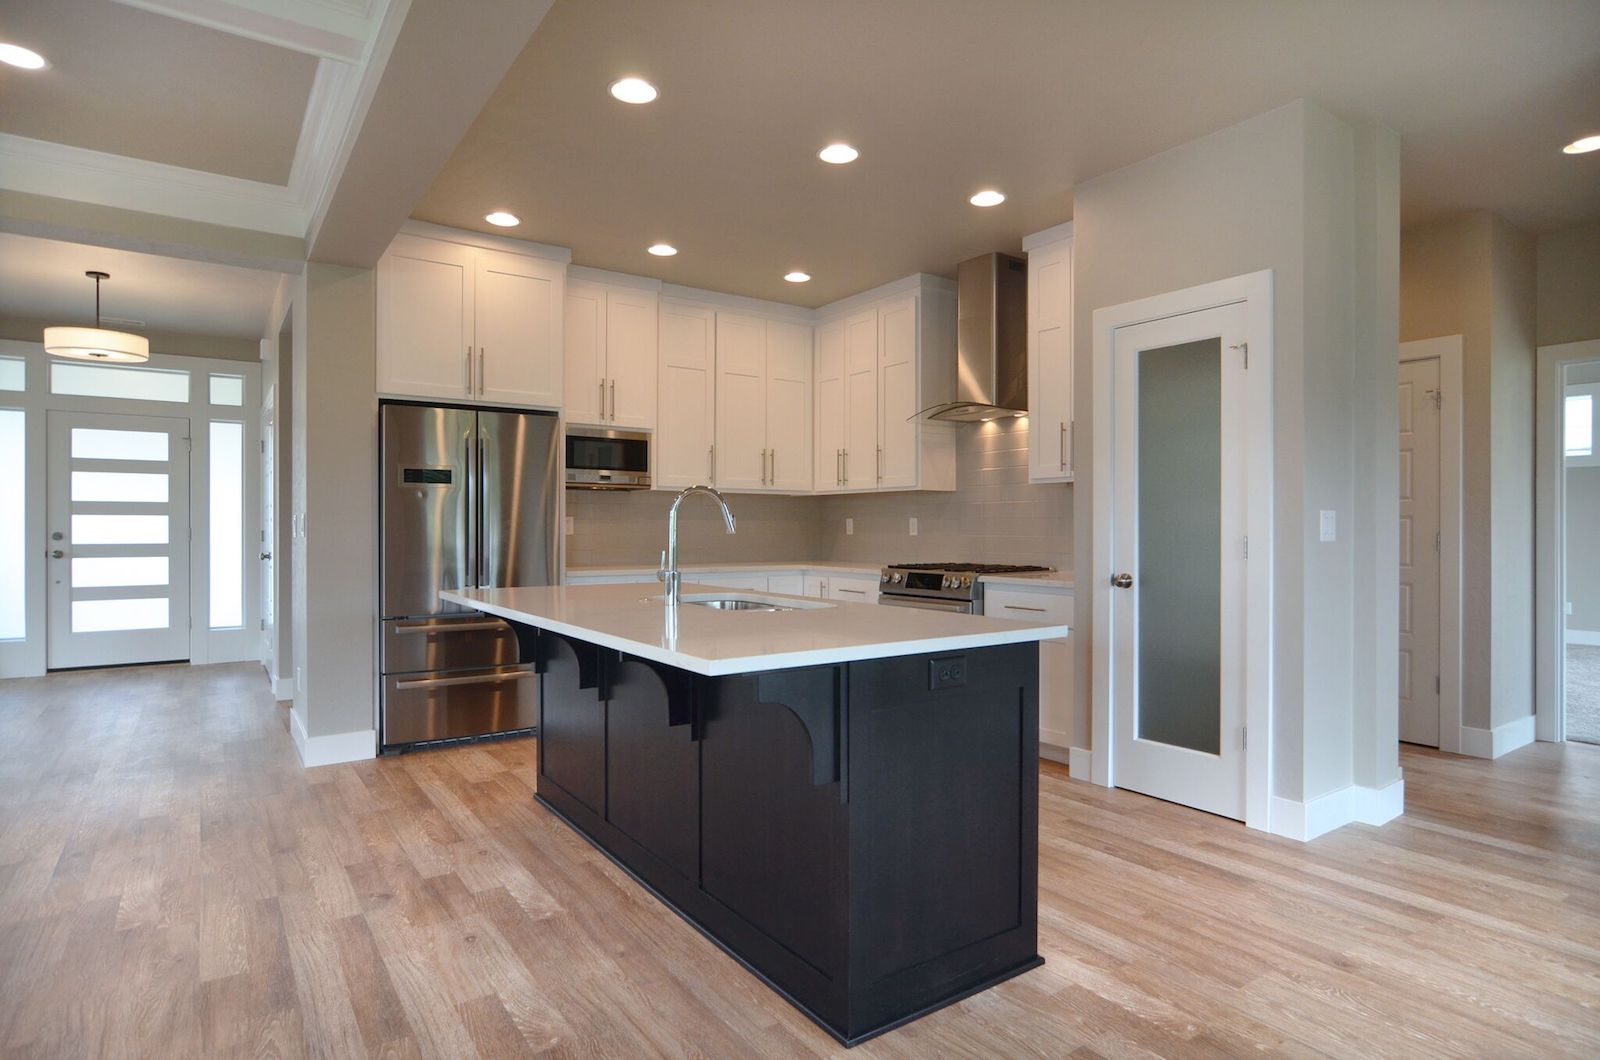 View of front entry, chef's kitchen and hallway to the master bedroom suite.